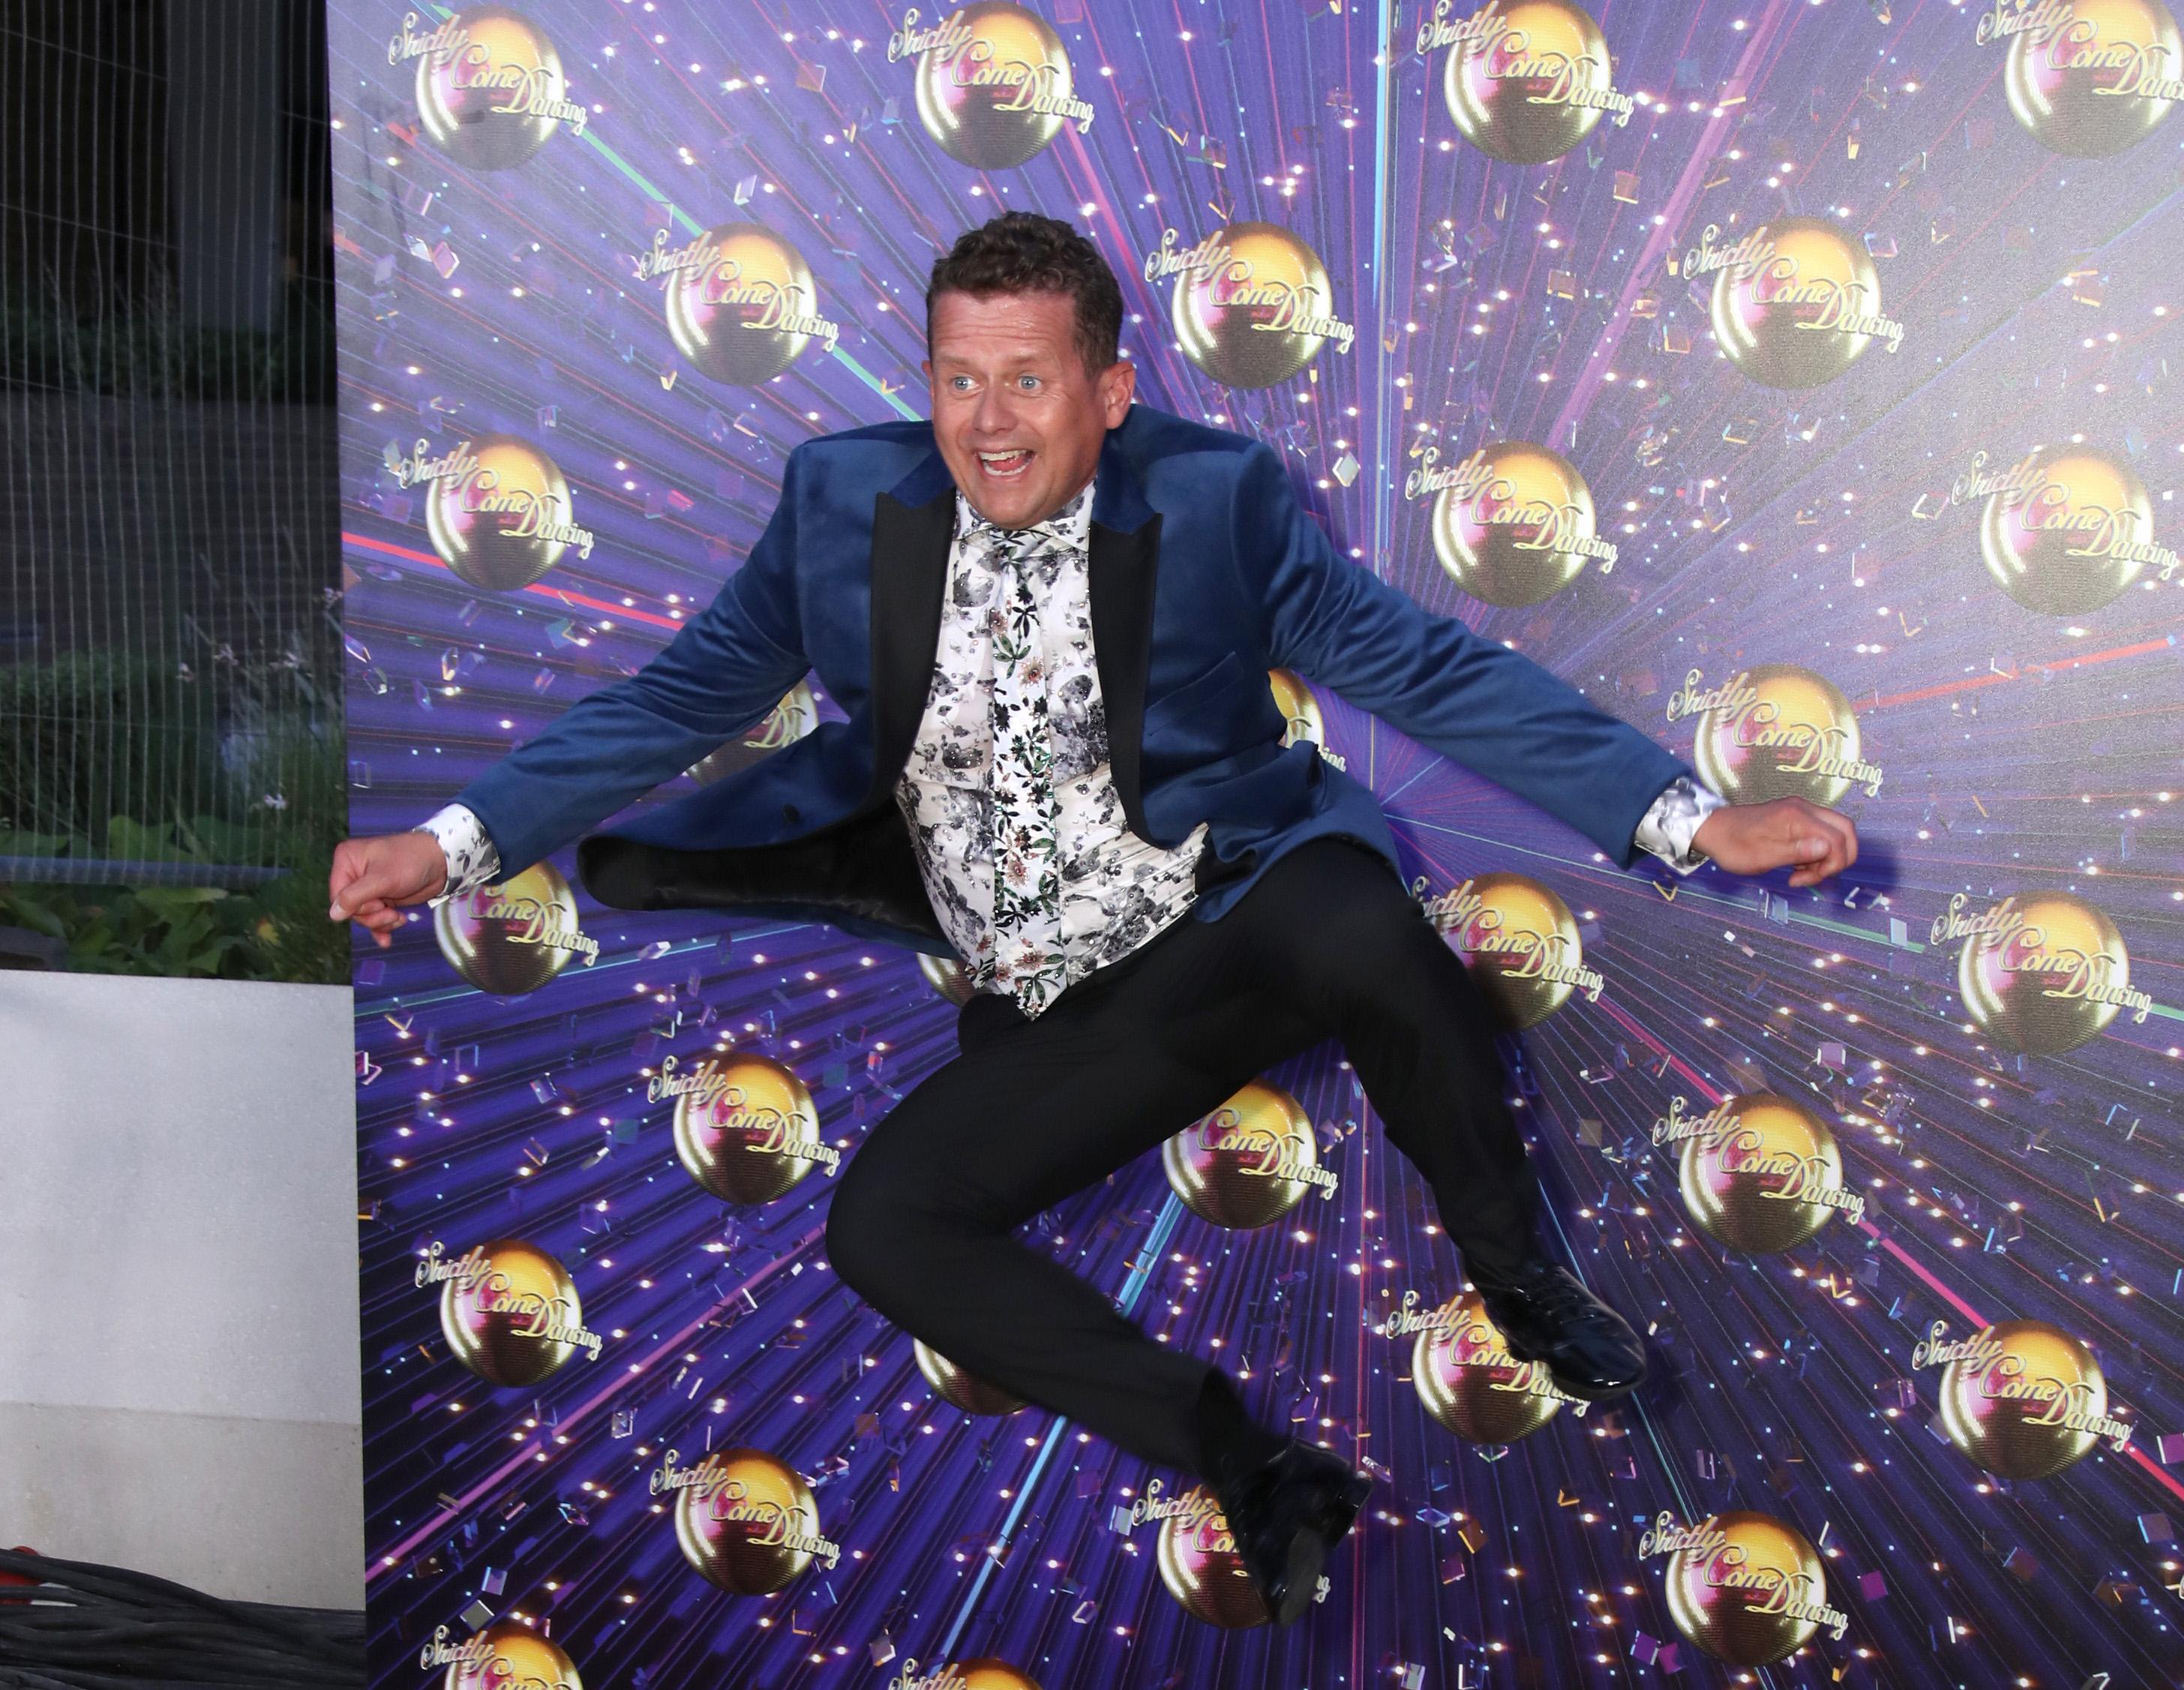 Mike Bushell has a facelift after 'Strictly' stint